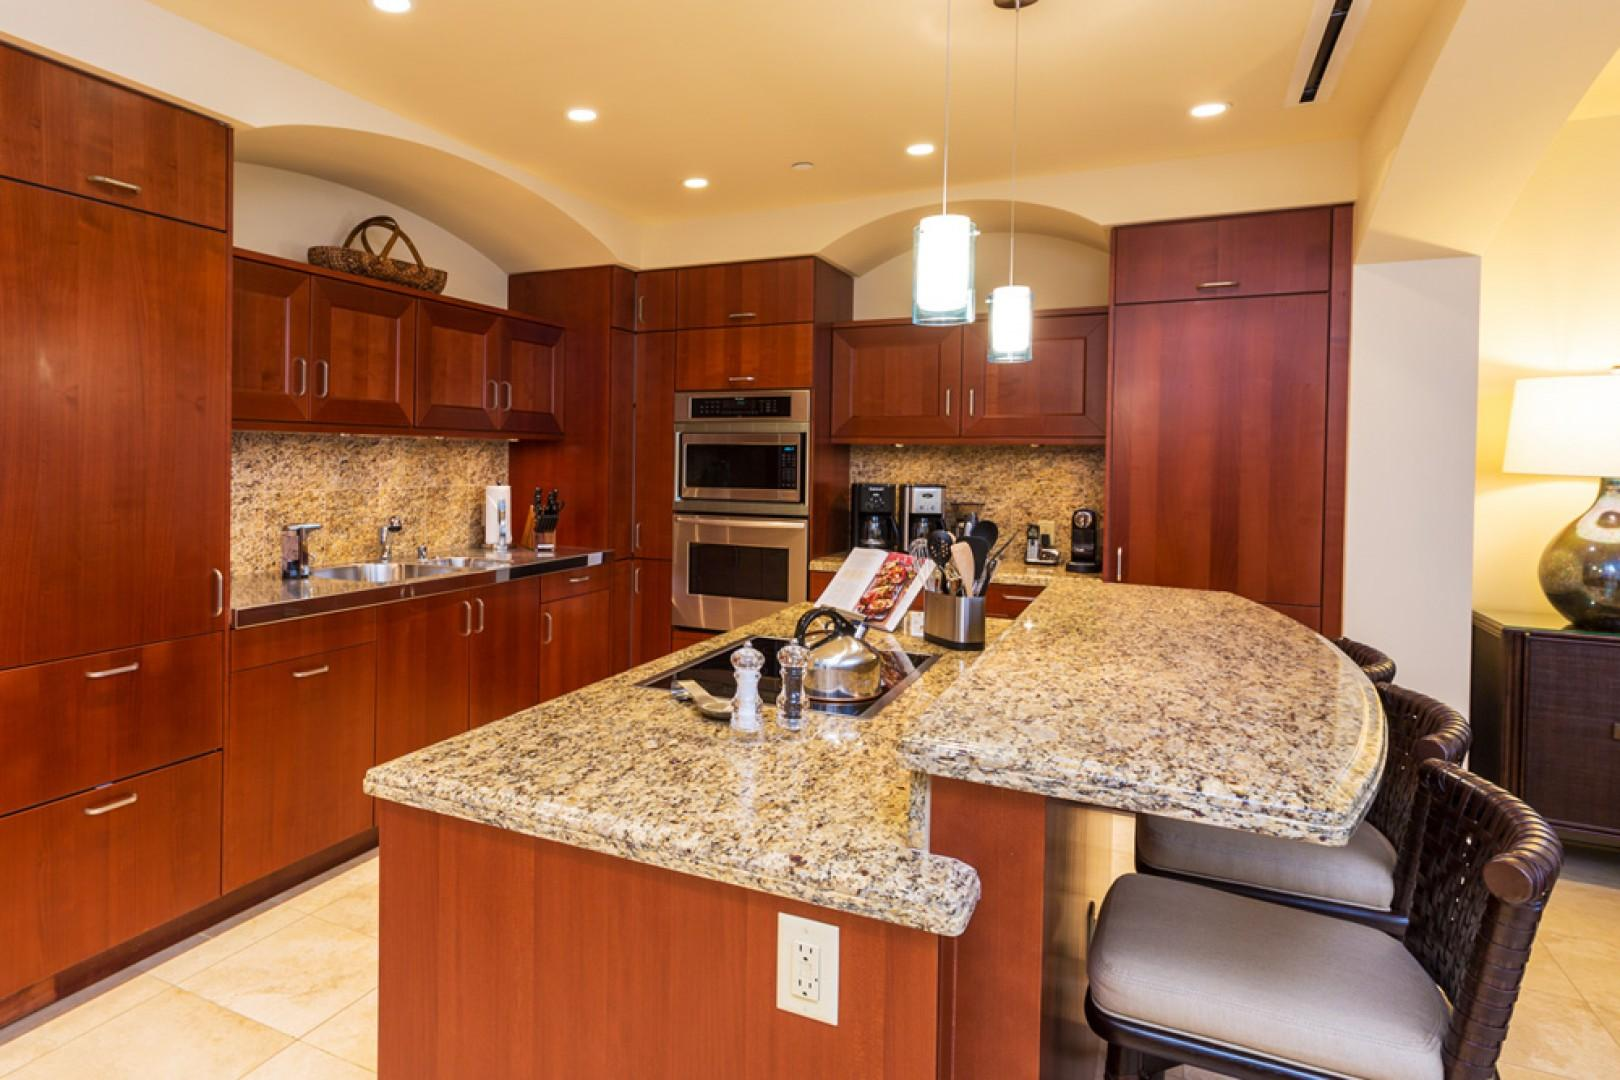 J405 Sea Breeze Suite Fully Equipped Chef Kitchen with Dual Coffee Makers and Abundant Cooking Supplies - All Brand New